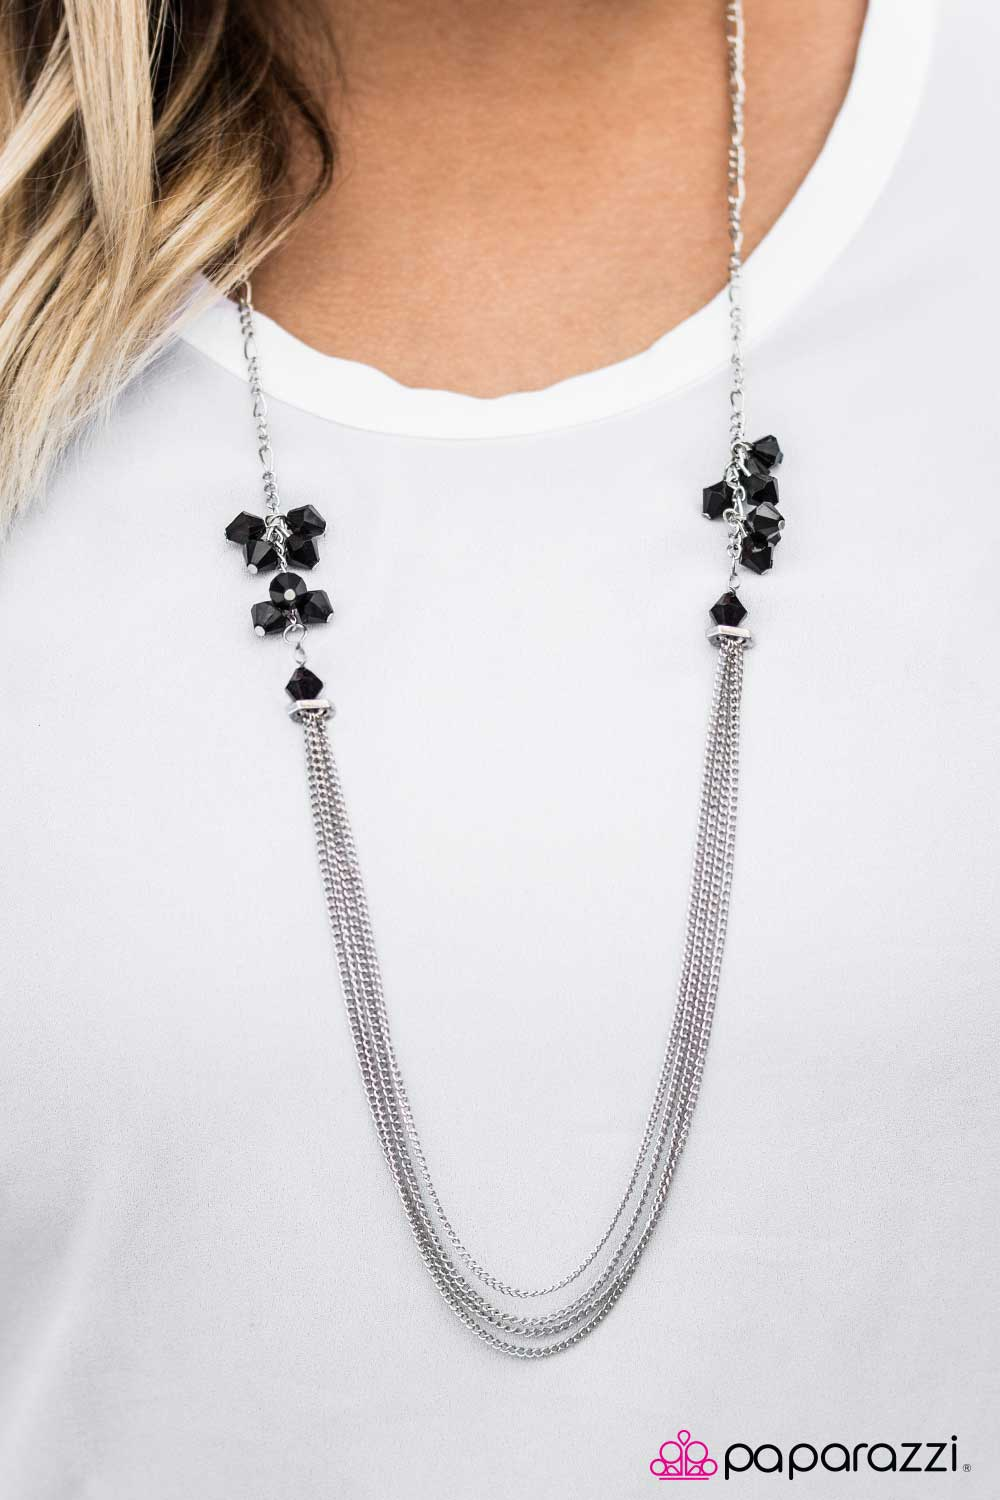 Movin and Groovin - Black - Paparazzi necklace